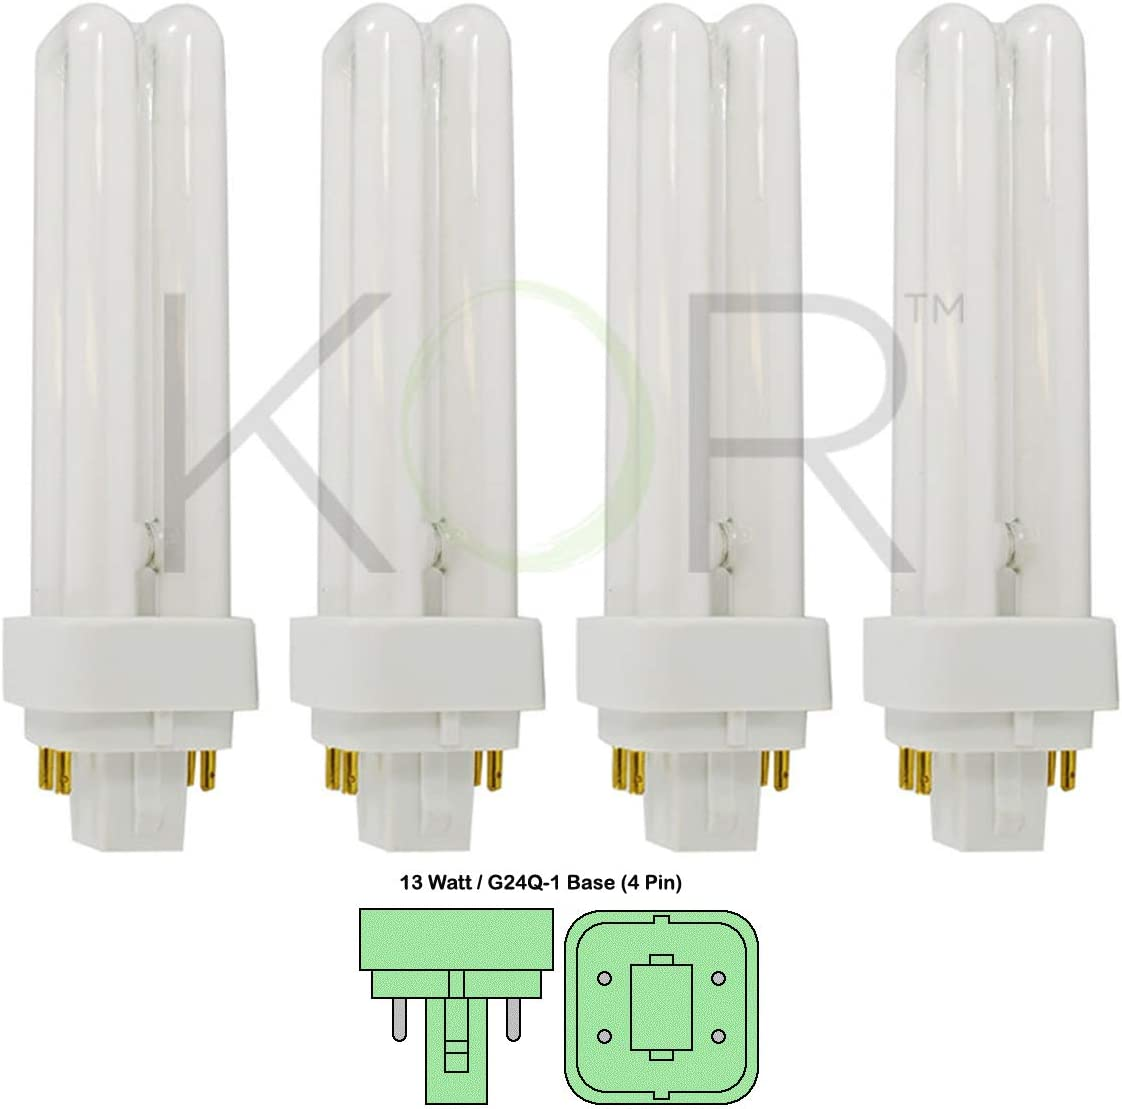 (Pack of 4) 13 Watt Double Tube - G24Q-1 (4 Pin) Base - 4100K Cool White - CFL Light Bulb. Replaces Sylvania 20667 CF13DD/E/841 - Philips 38328-1 PL-C 13W/841/4P/ALTO and GE 97597 F13DBX/841/ECO4P